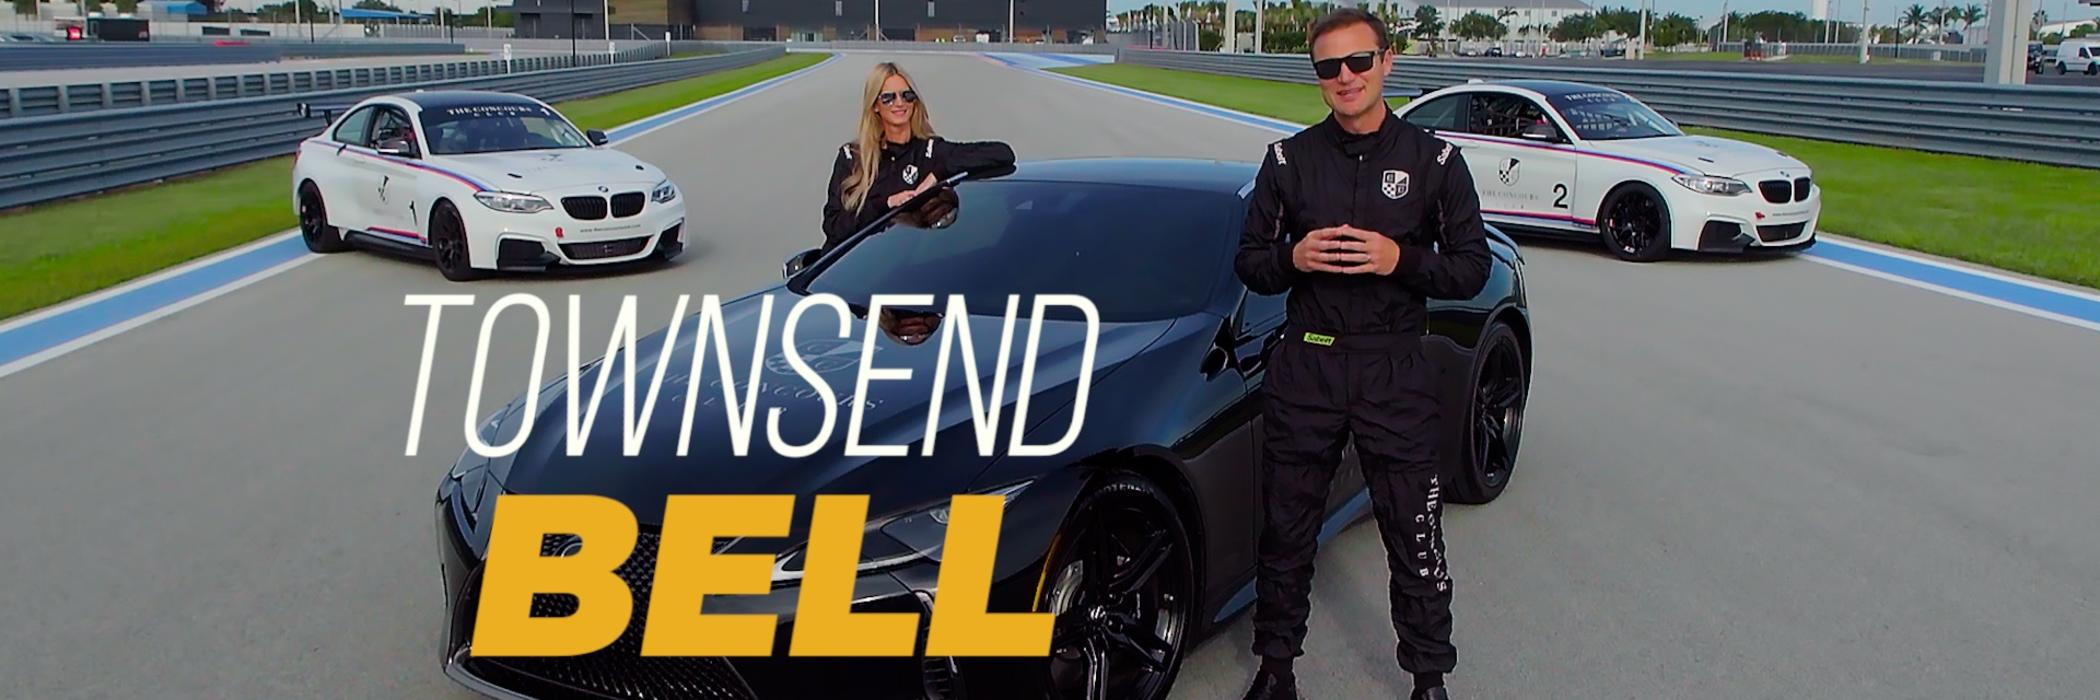 Townsend Bell and friend with luxury car